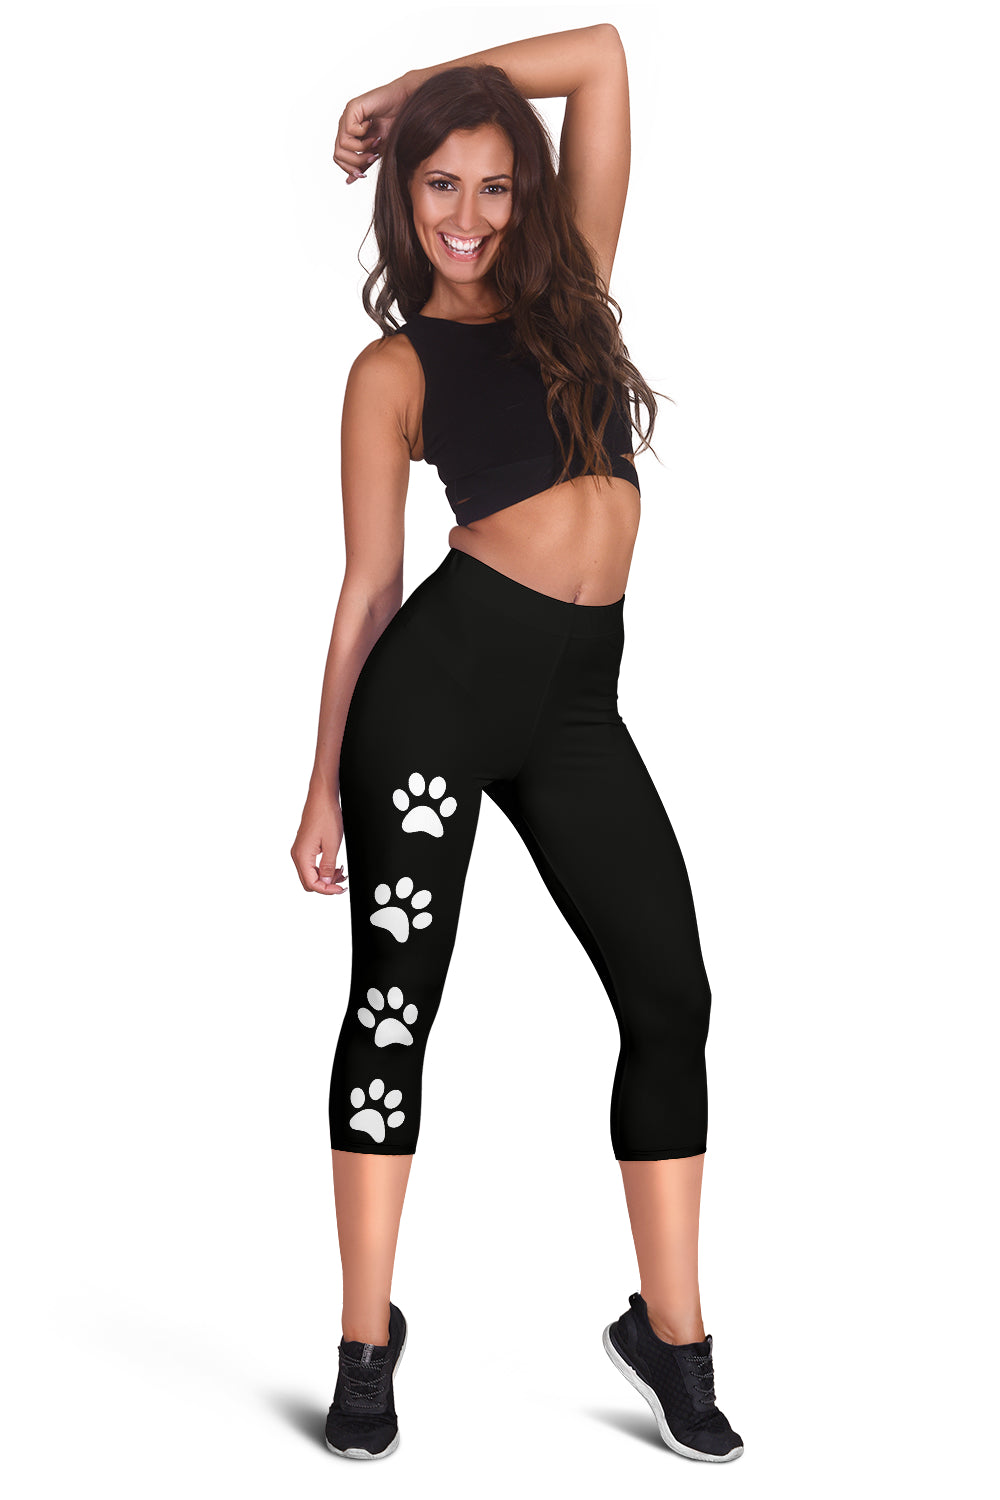 Women's Paw Print Capris Leggings